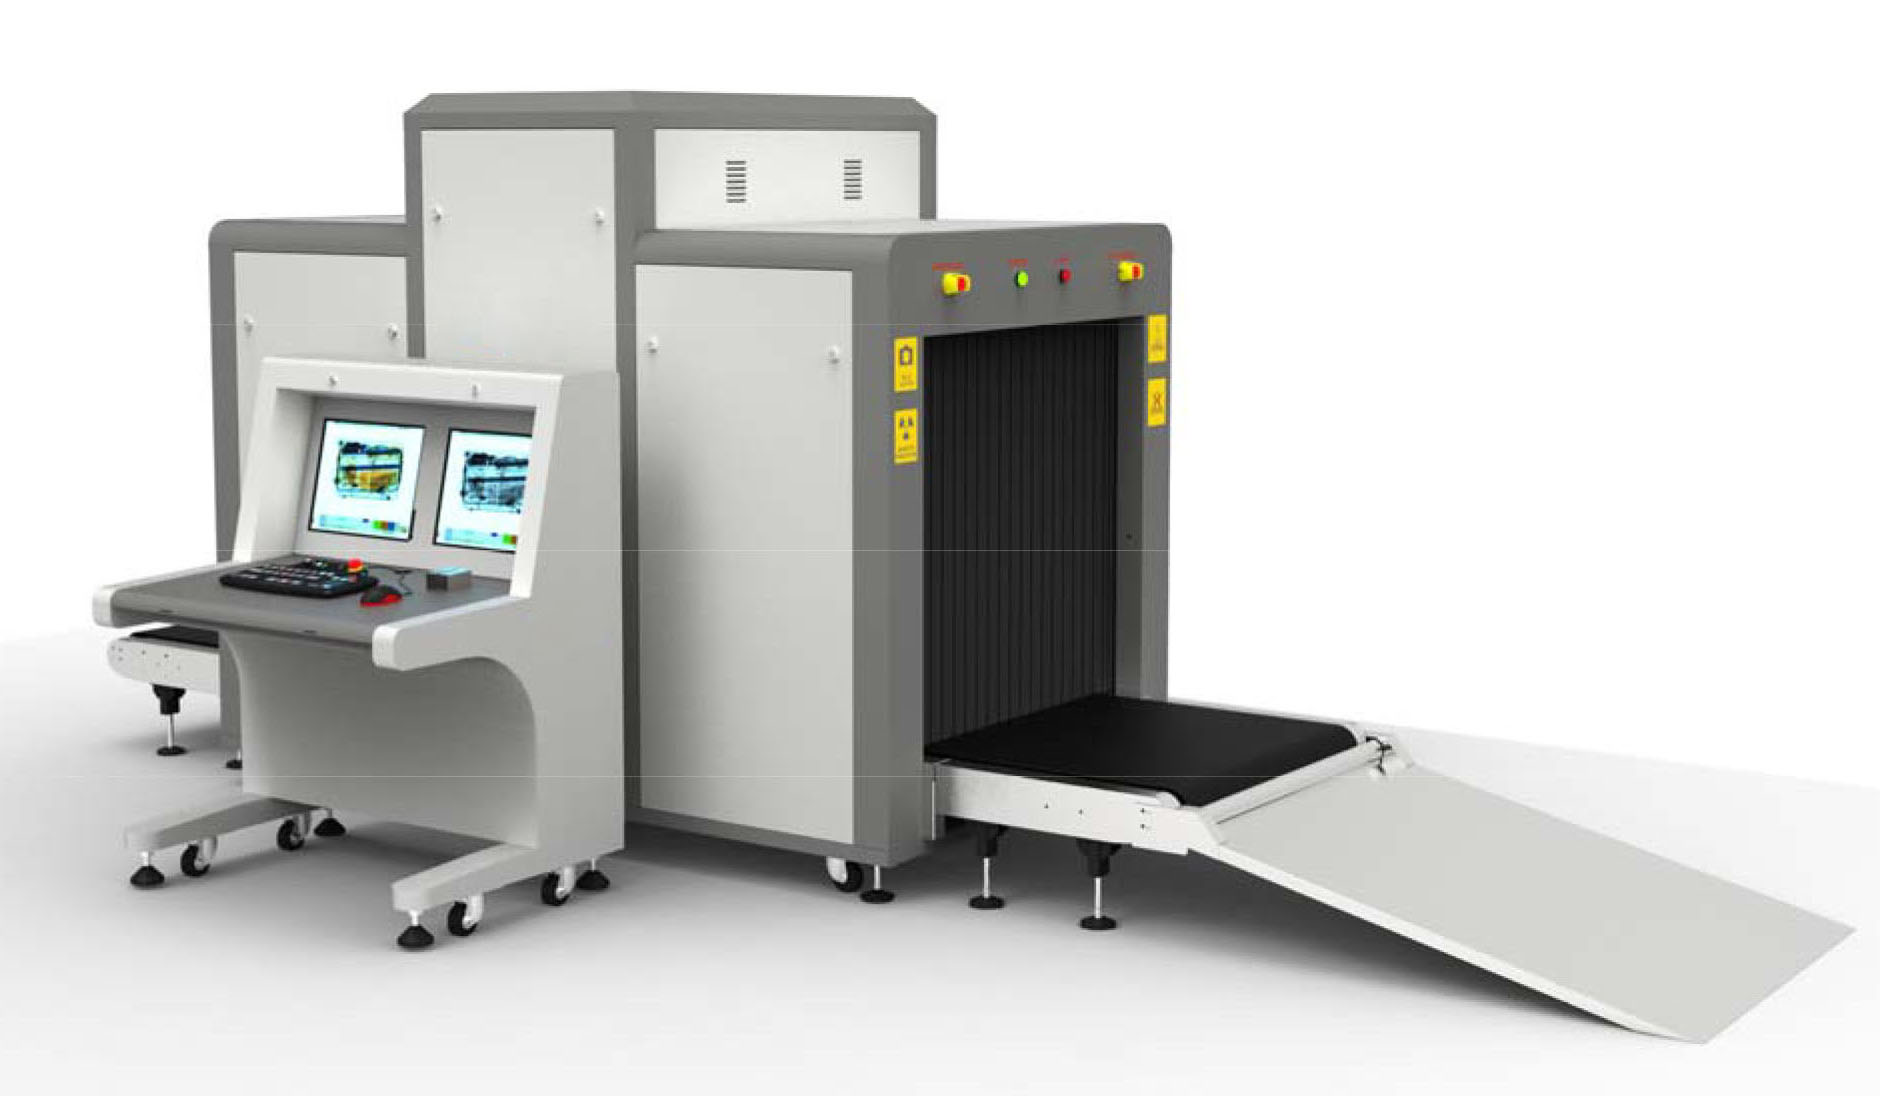 X-Ray Security Screening System Market Report - Industry Size, Share, Trends, Growth And Forecast Till 2025